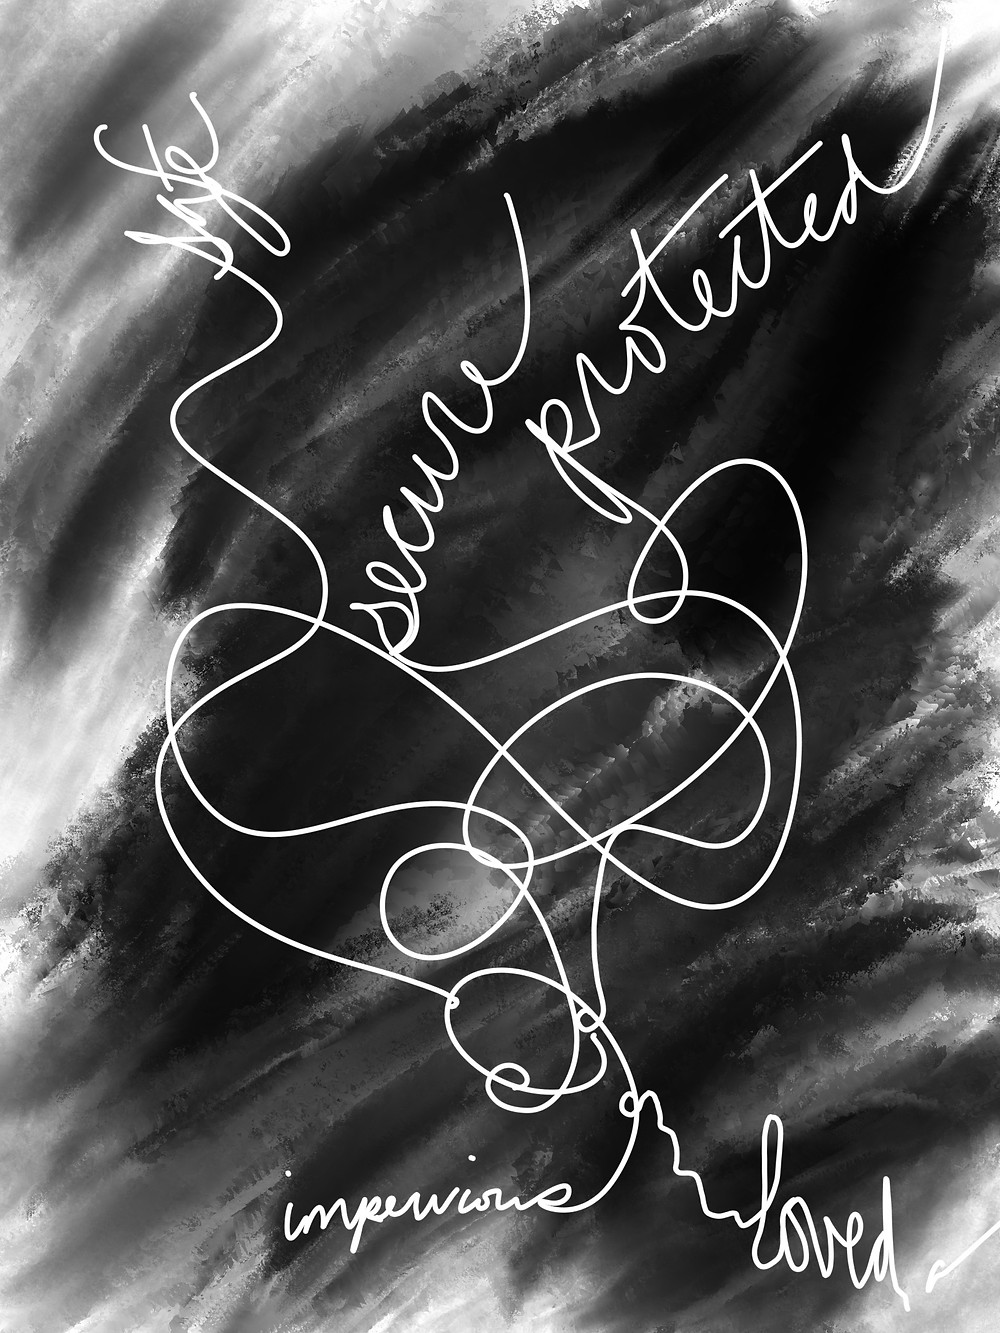 Digital painting with words. Obscured black background. White words tangled together. Impervious holding 'safe,' 'secure,' 'protected' in the air while the word 'love' crumples on the ground.